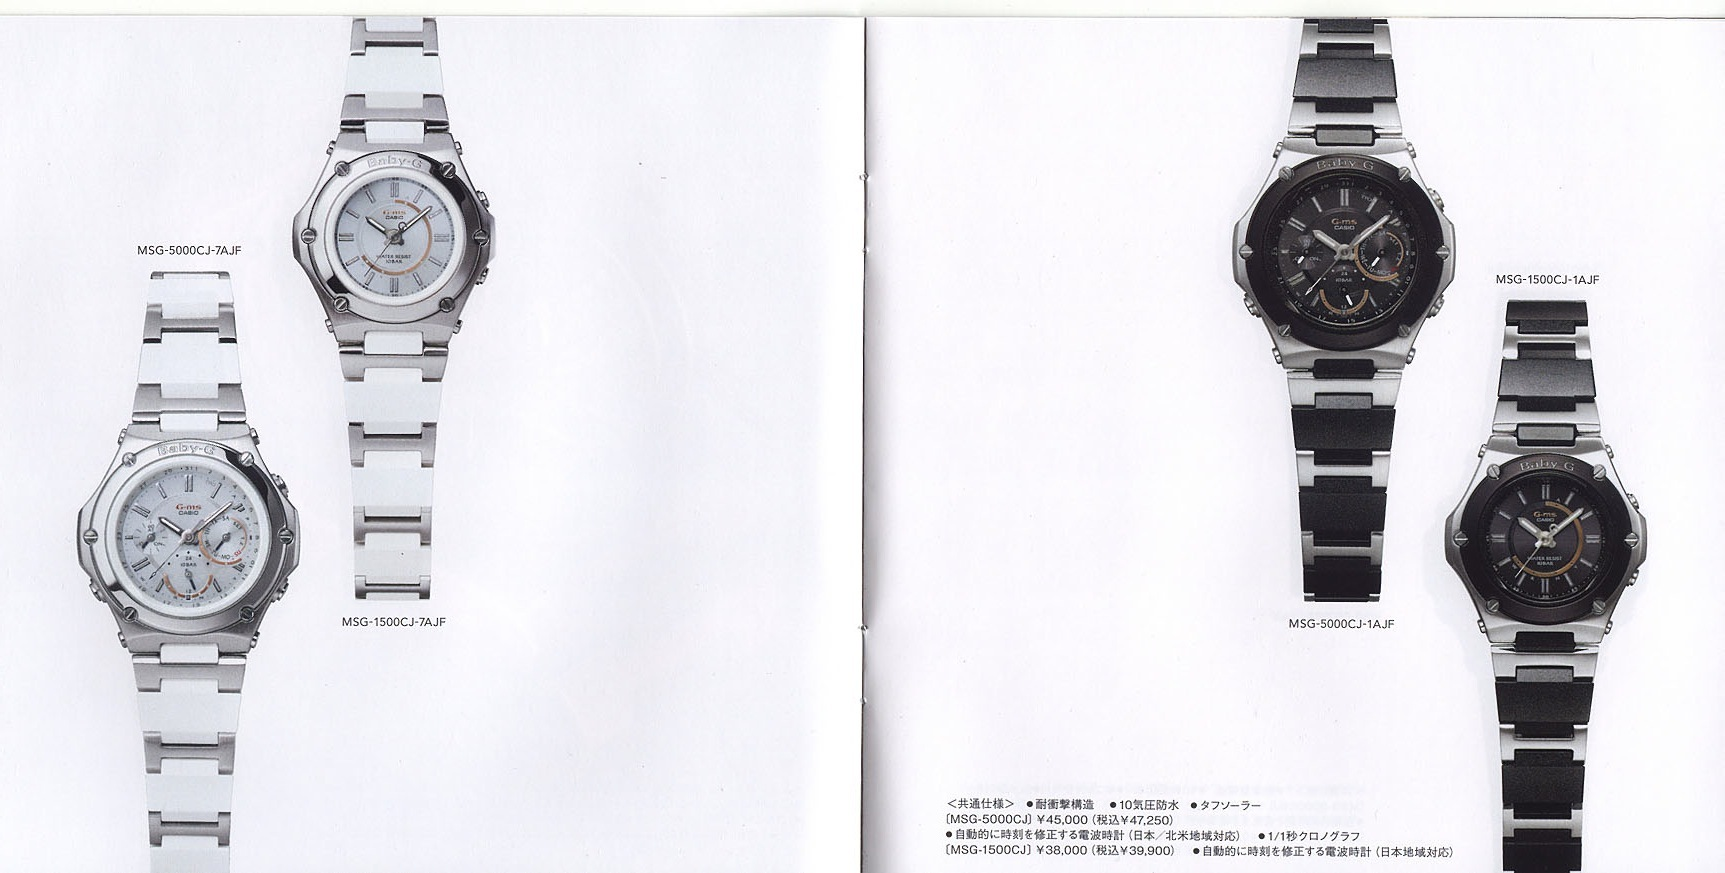 Baby-G-Casio-watches-2009-Catalog-Page-4.jpg